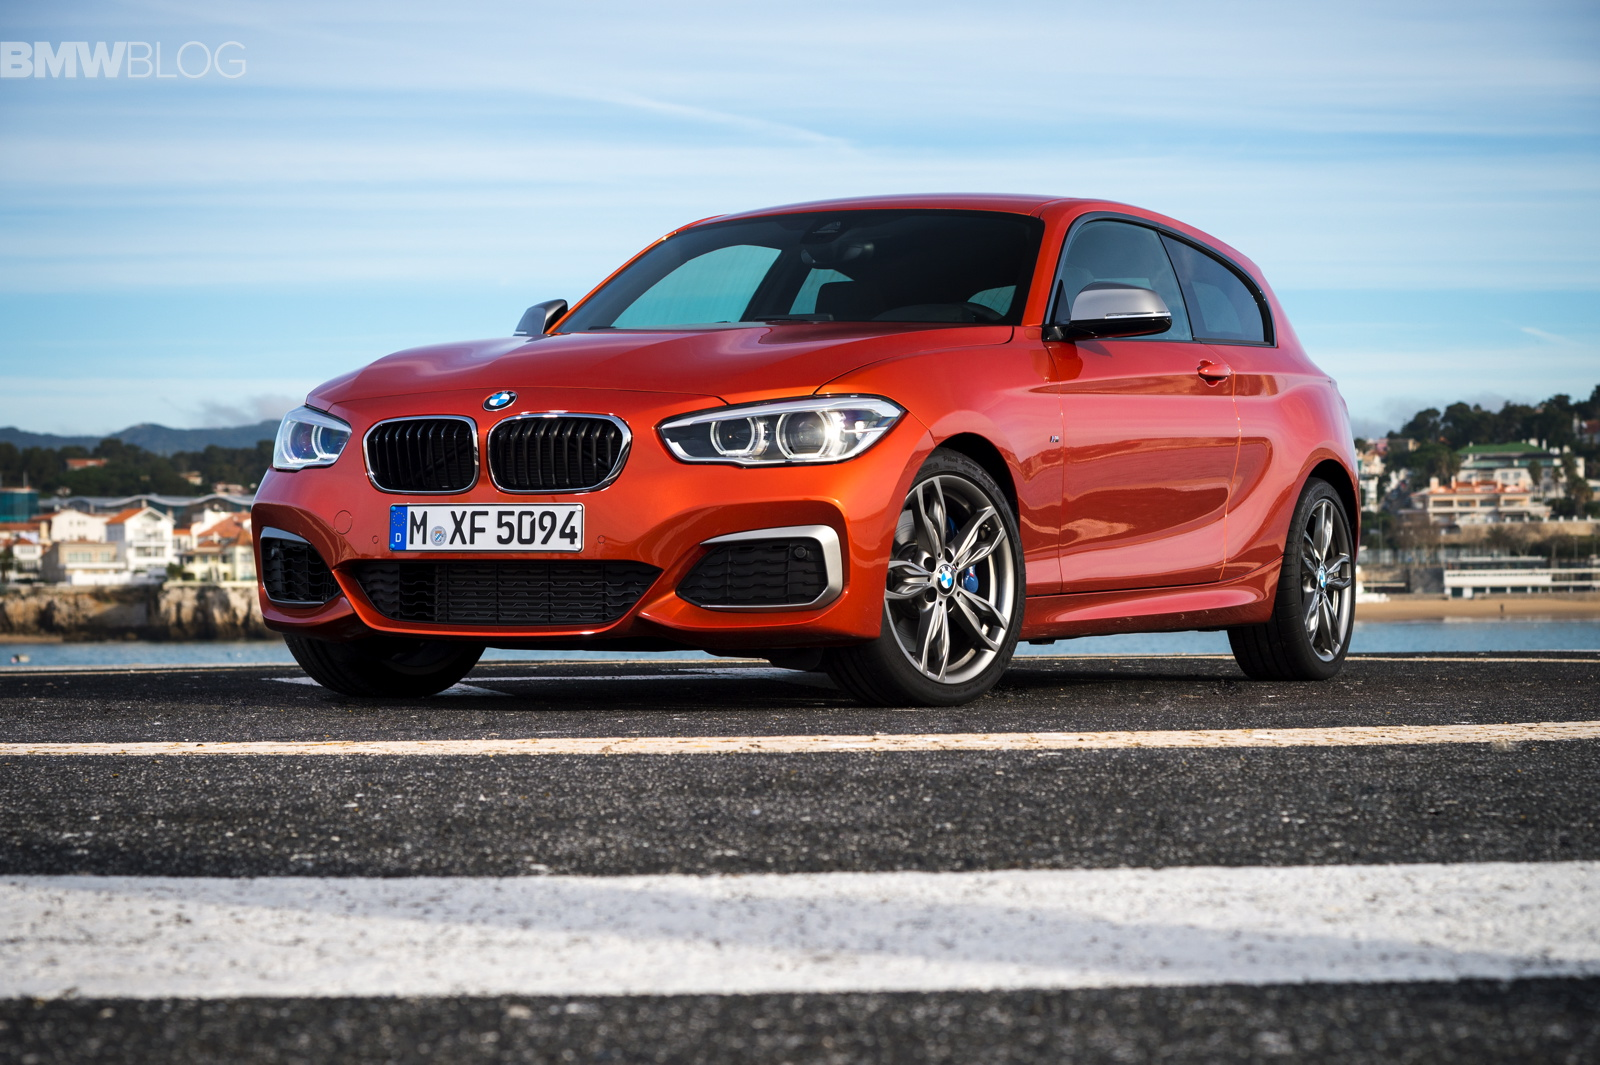 Why I Like The Bmw 1 Series So Much